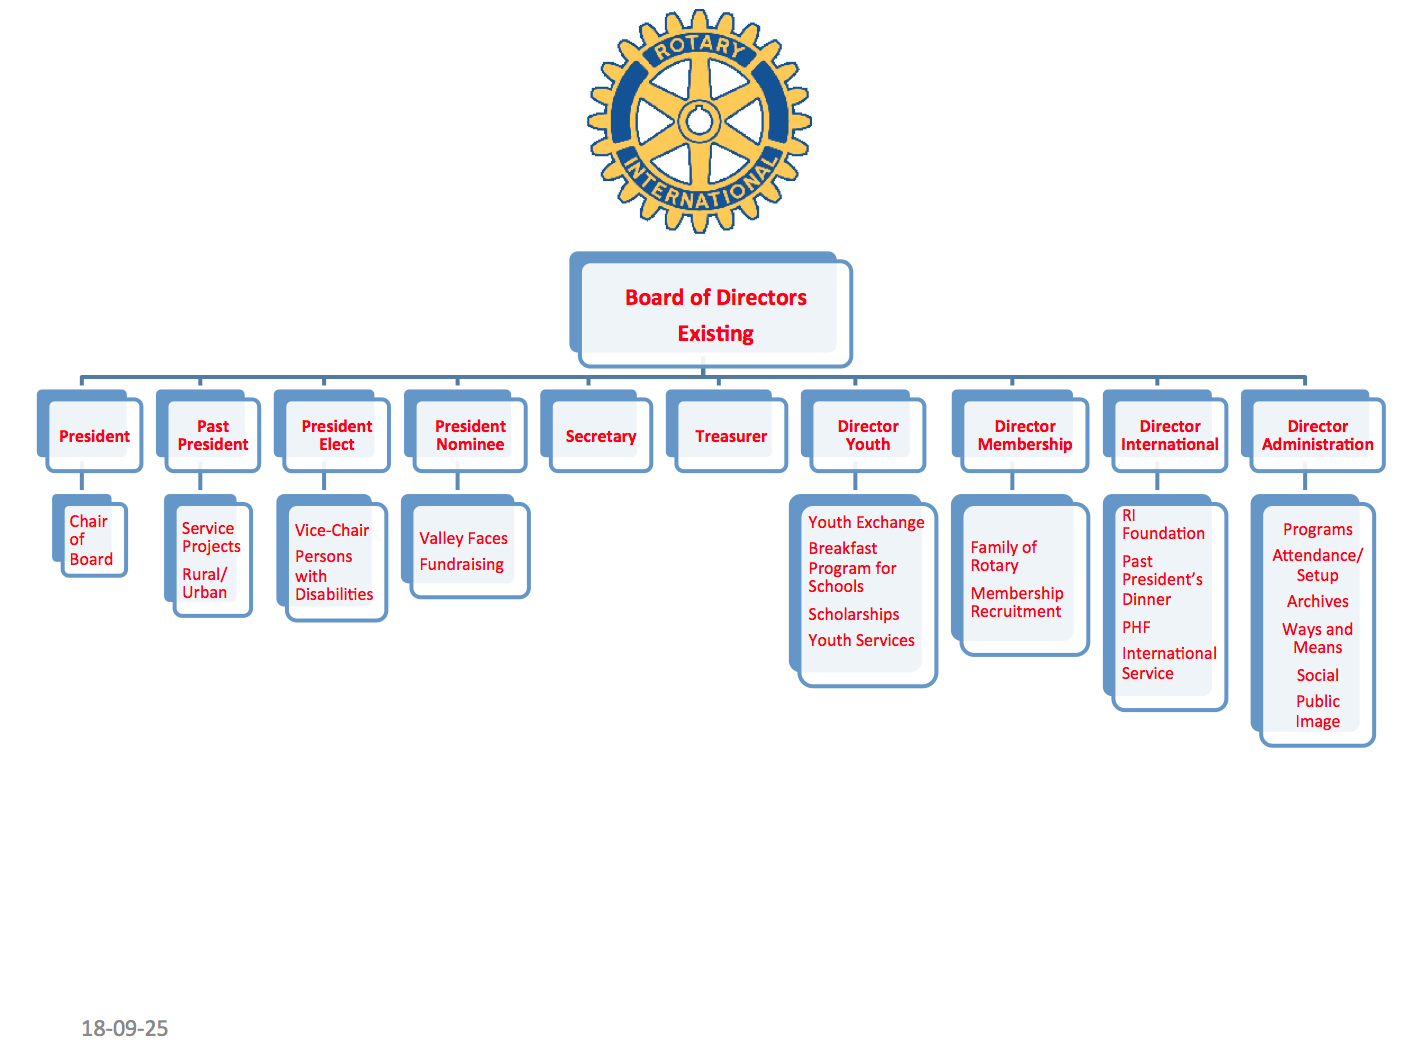 Stories Rotary Club Of Kentville District 7820 Choppers Australia O View Topic Electrics And Relays Social Media Craig Shared That Our Overall Multi Presence Is Generally Ignored By The If We Dont Get Input From Members Committees